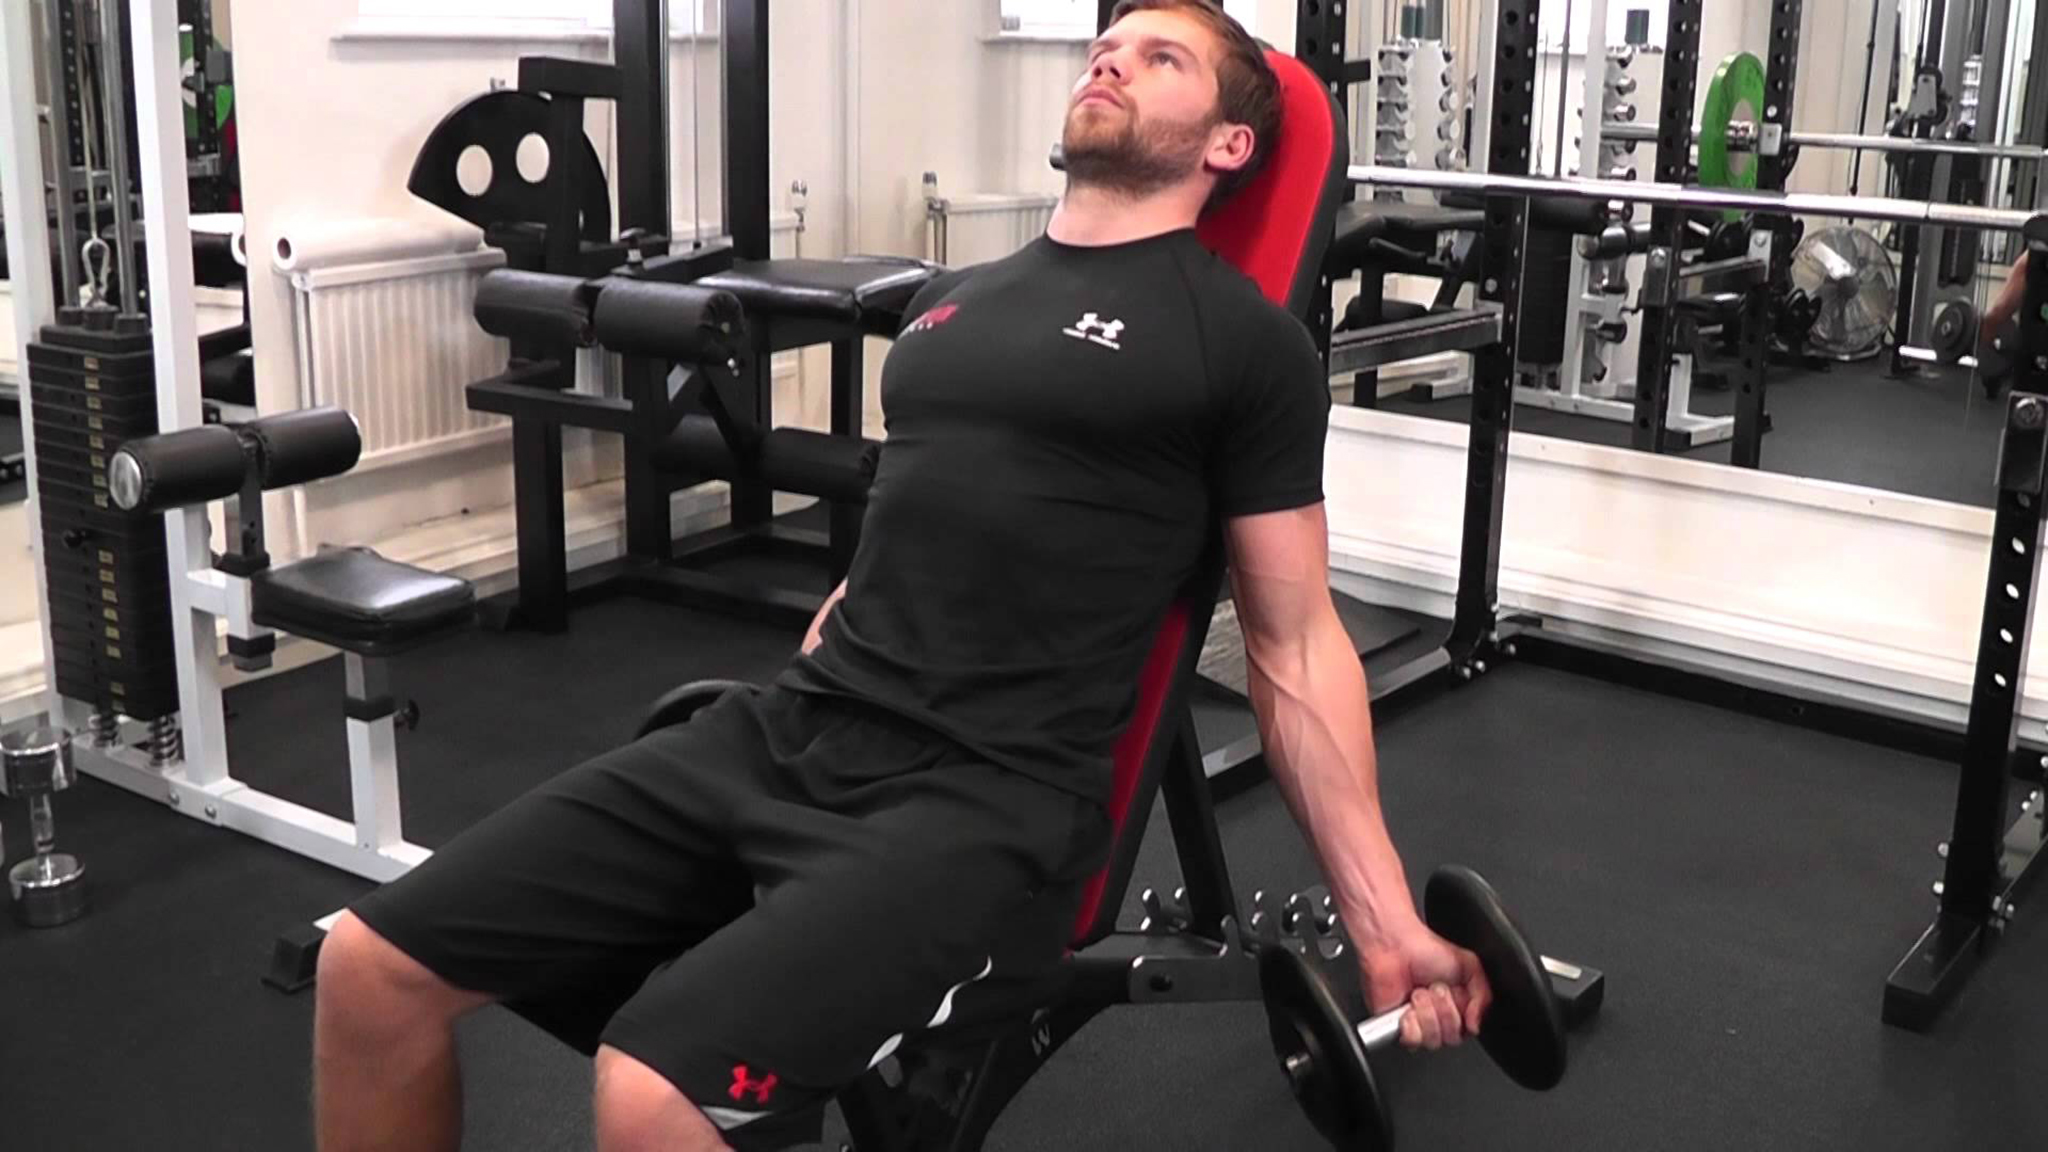 60 seconds read if you want to get the bigger biceps!